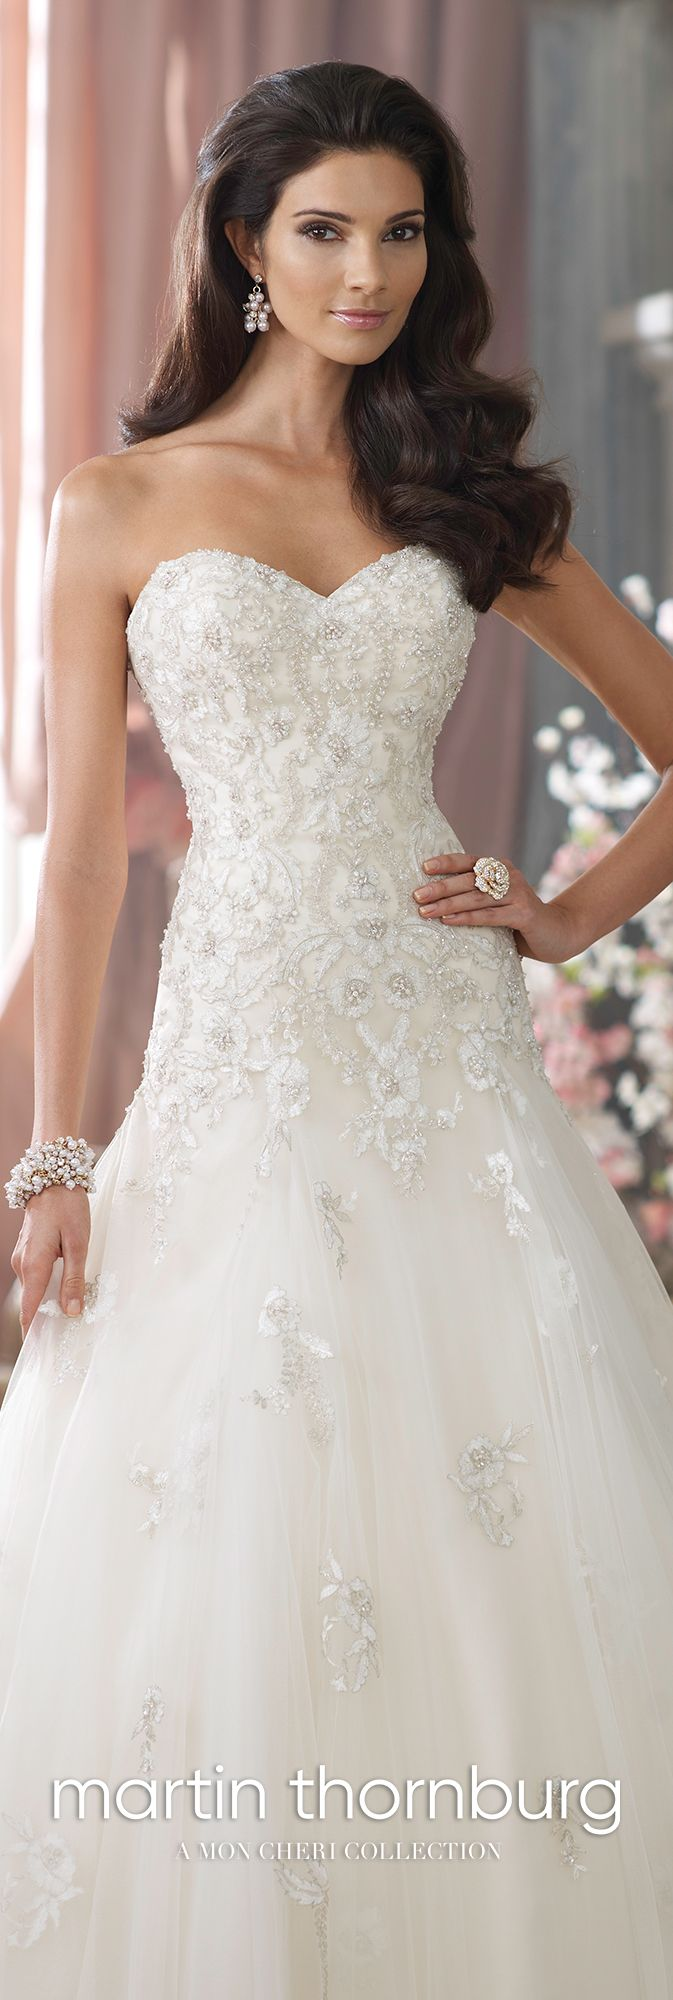 Strapless handbeaded schiffli lace wedding dress kristi